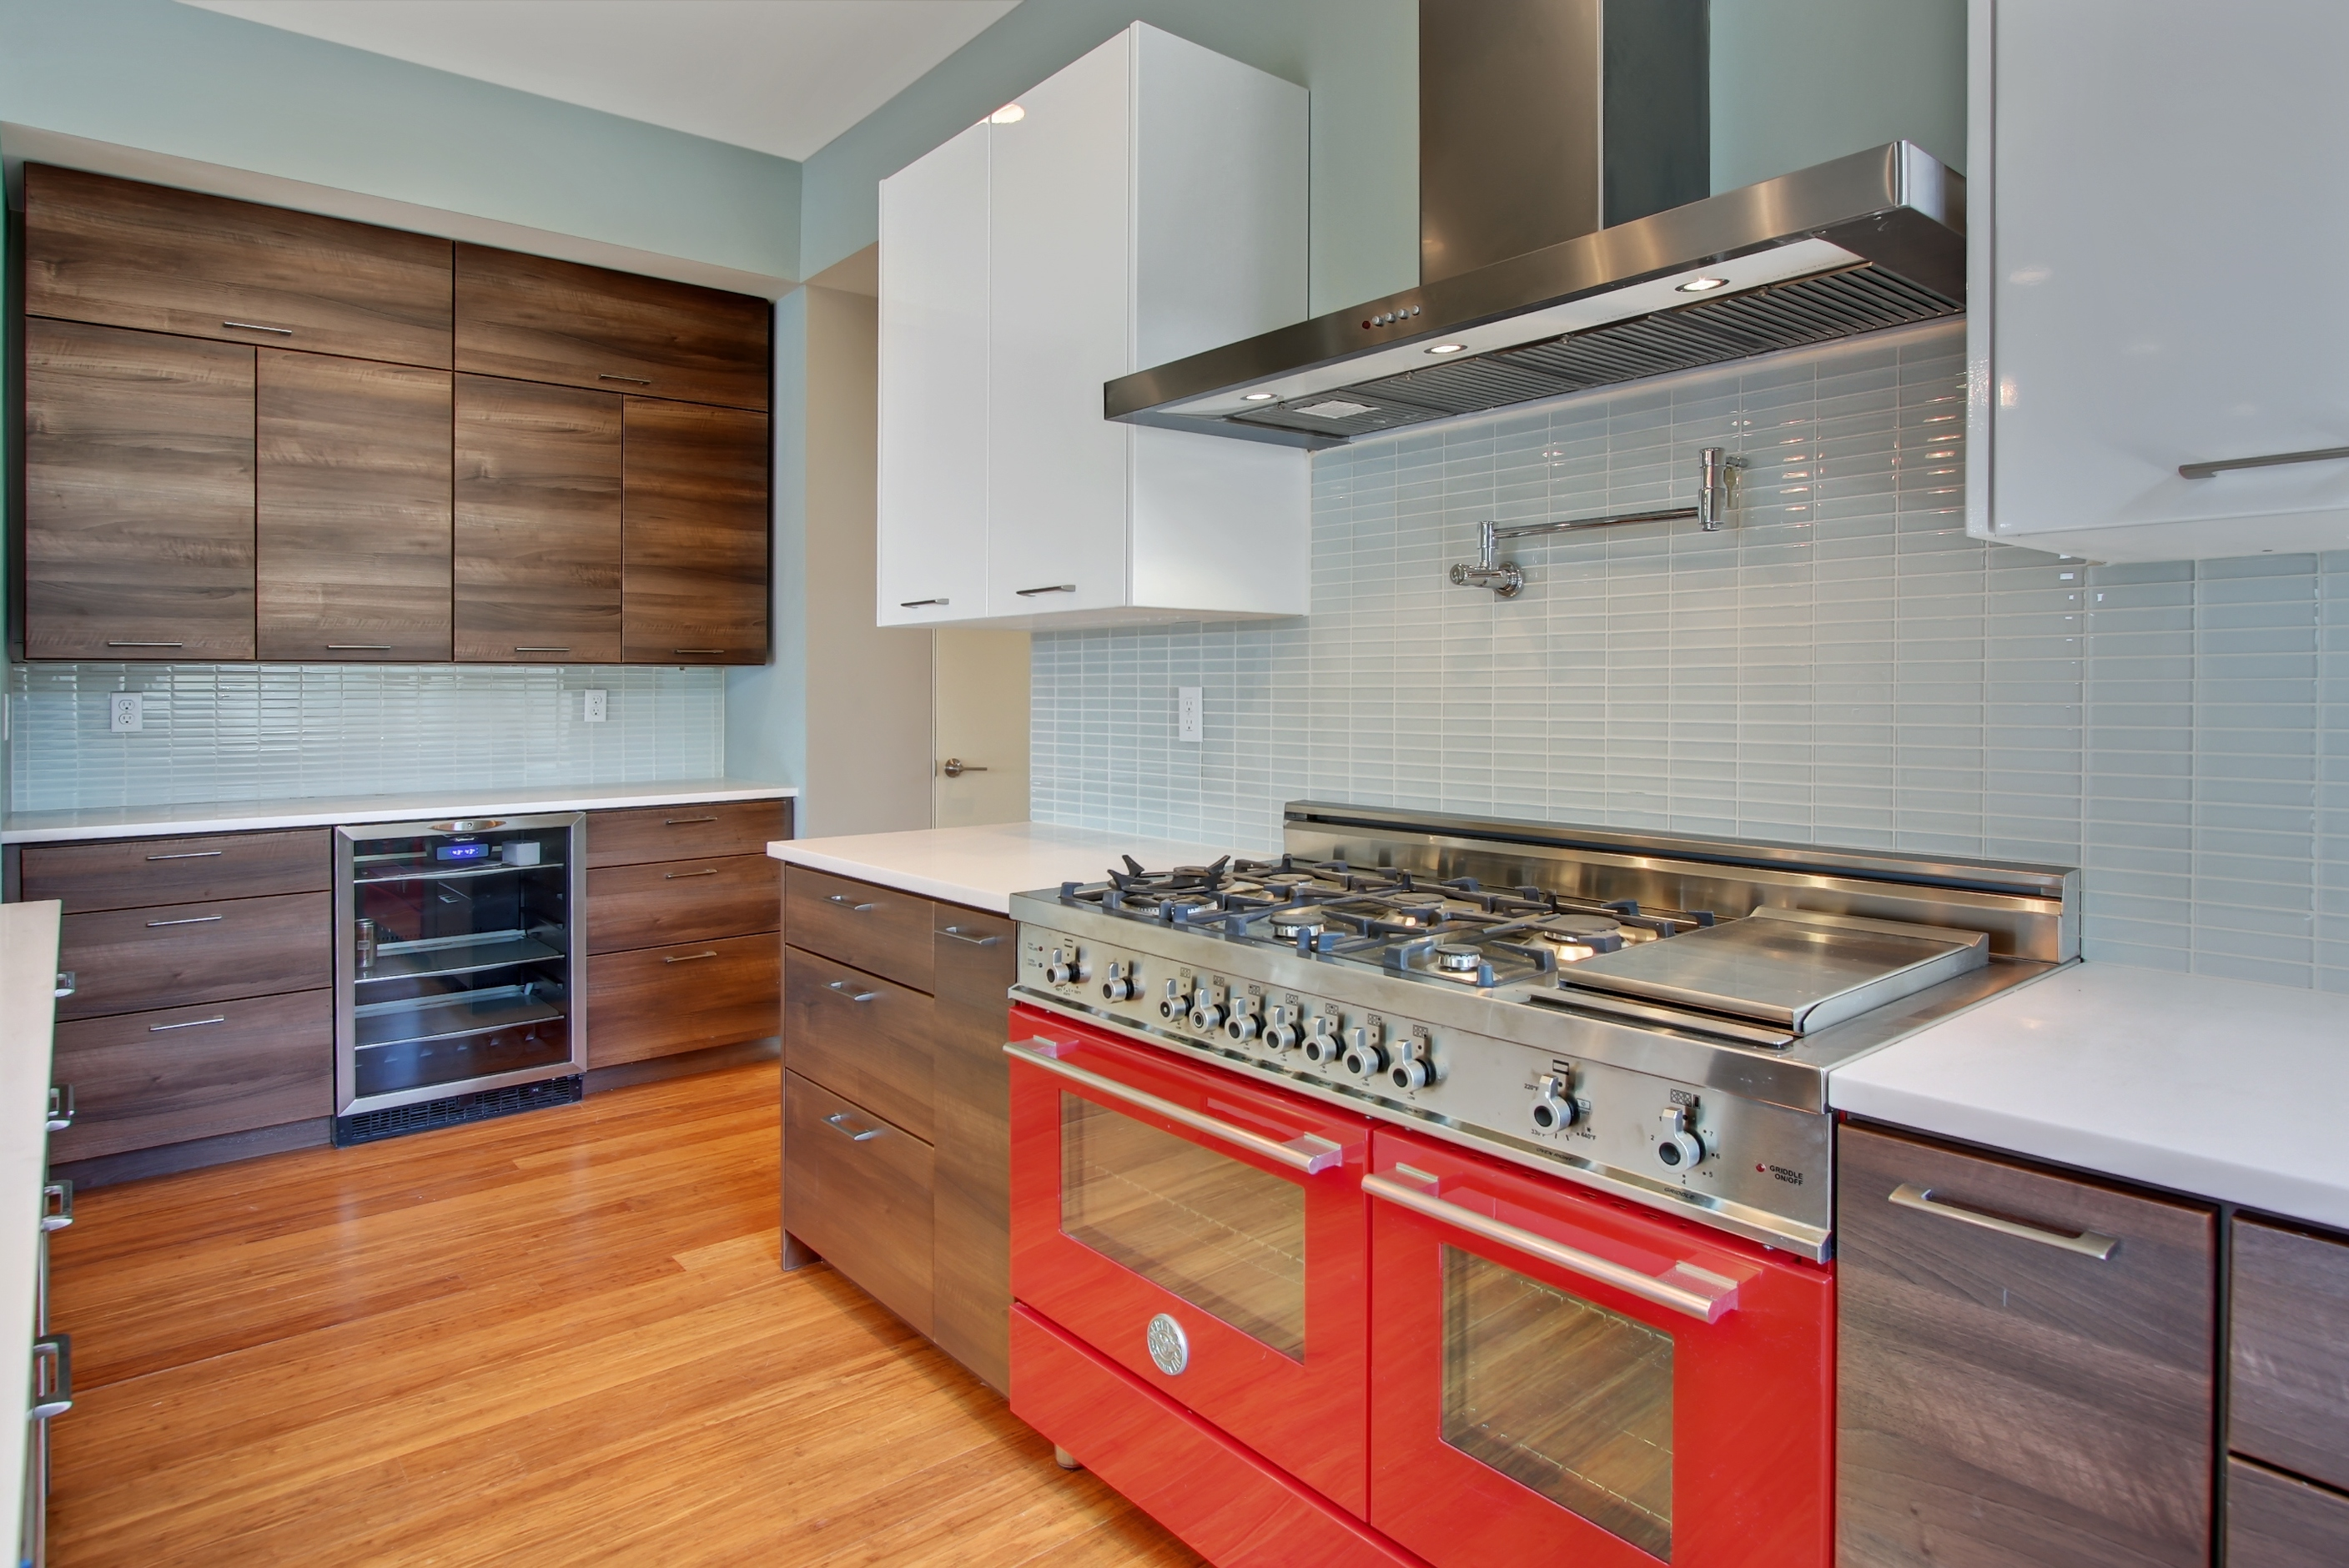 designer kitchen ovens homethangs introduces a tip sheet to choosing a new 483